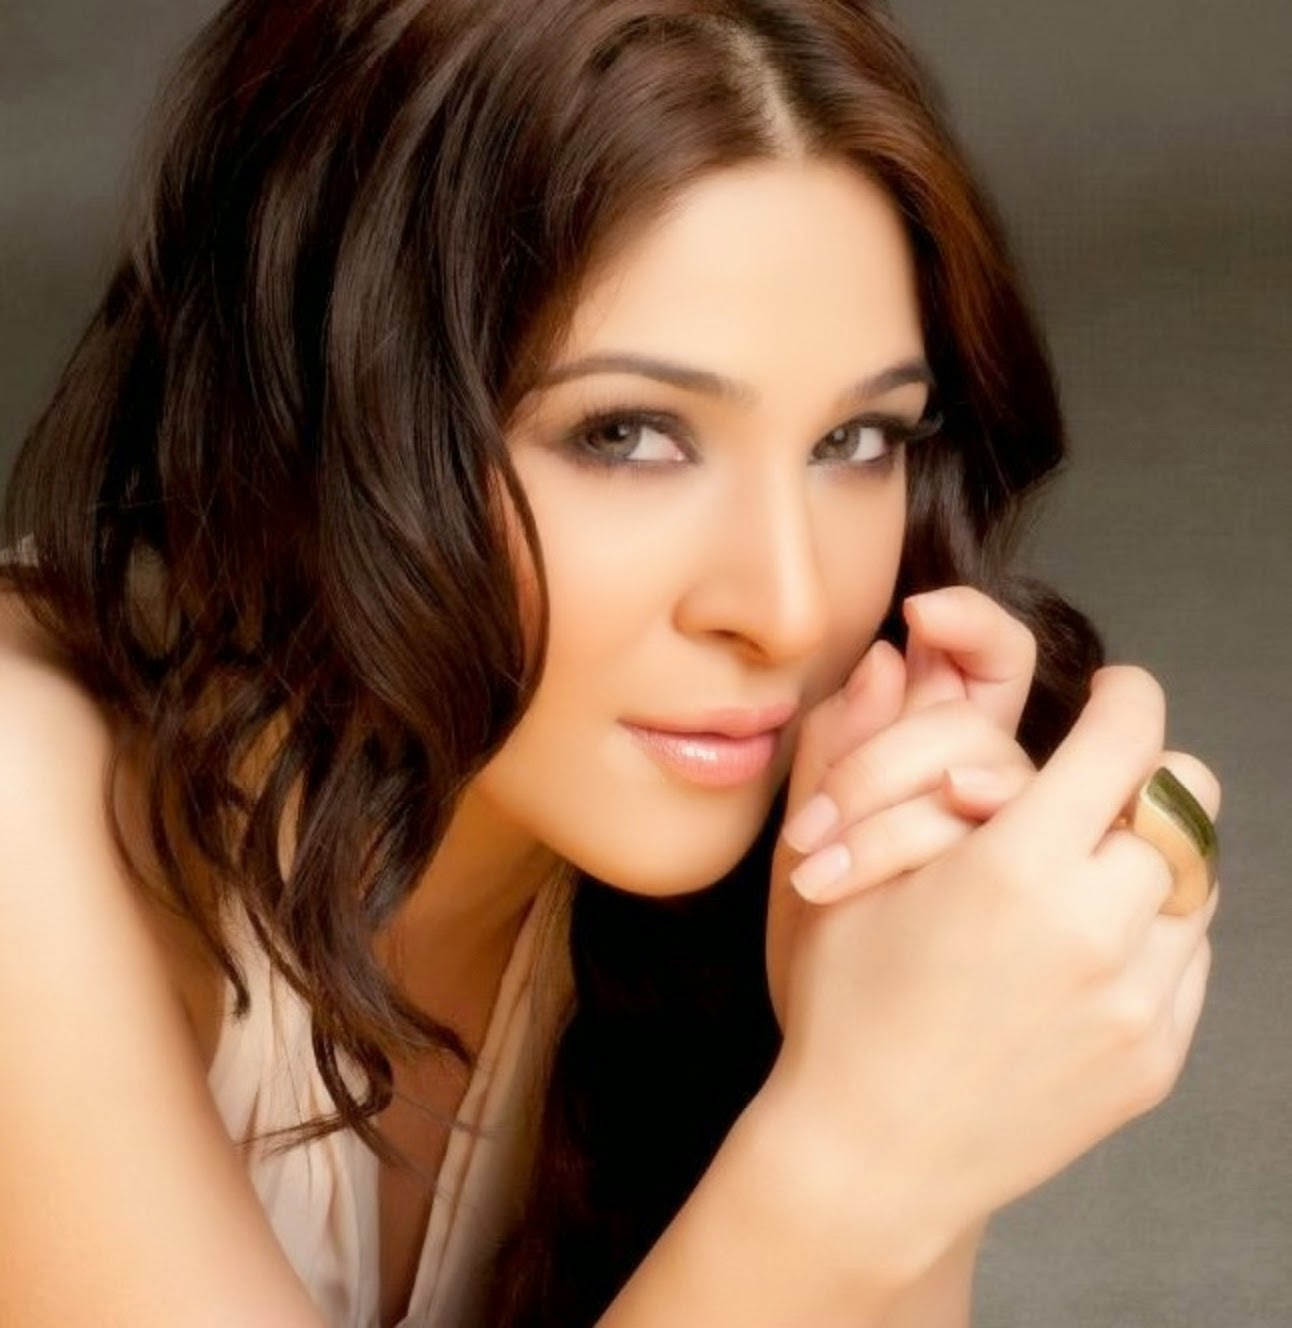 Ayesha Omar Wallpaper: Ayesha Omer HD Wallpapers Free Download -I-